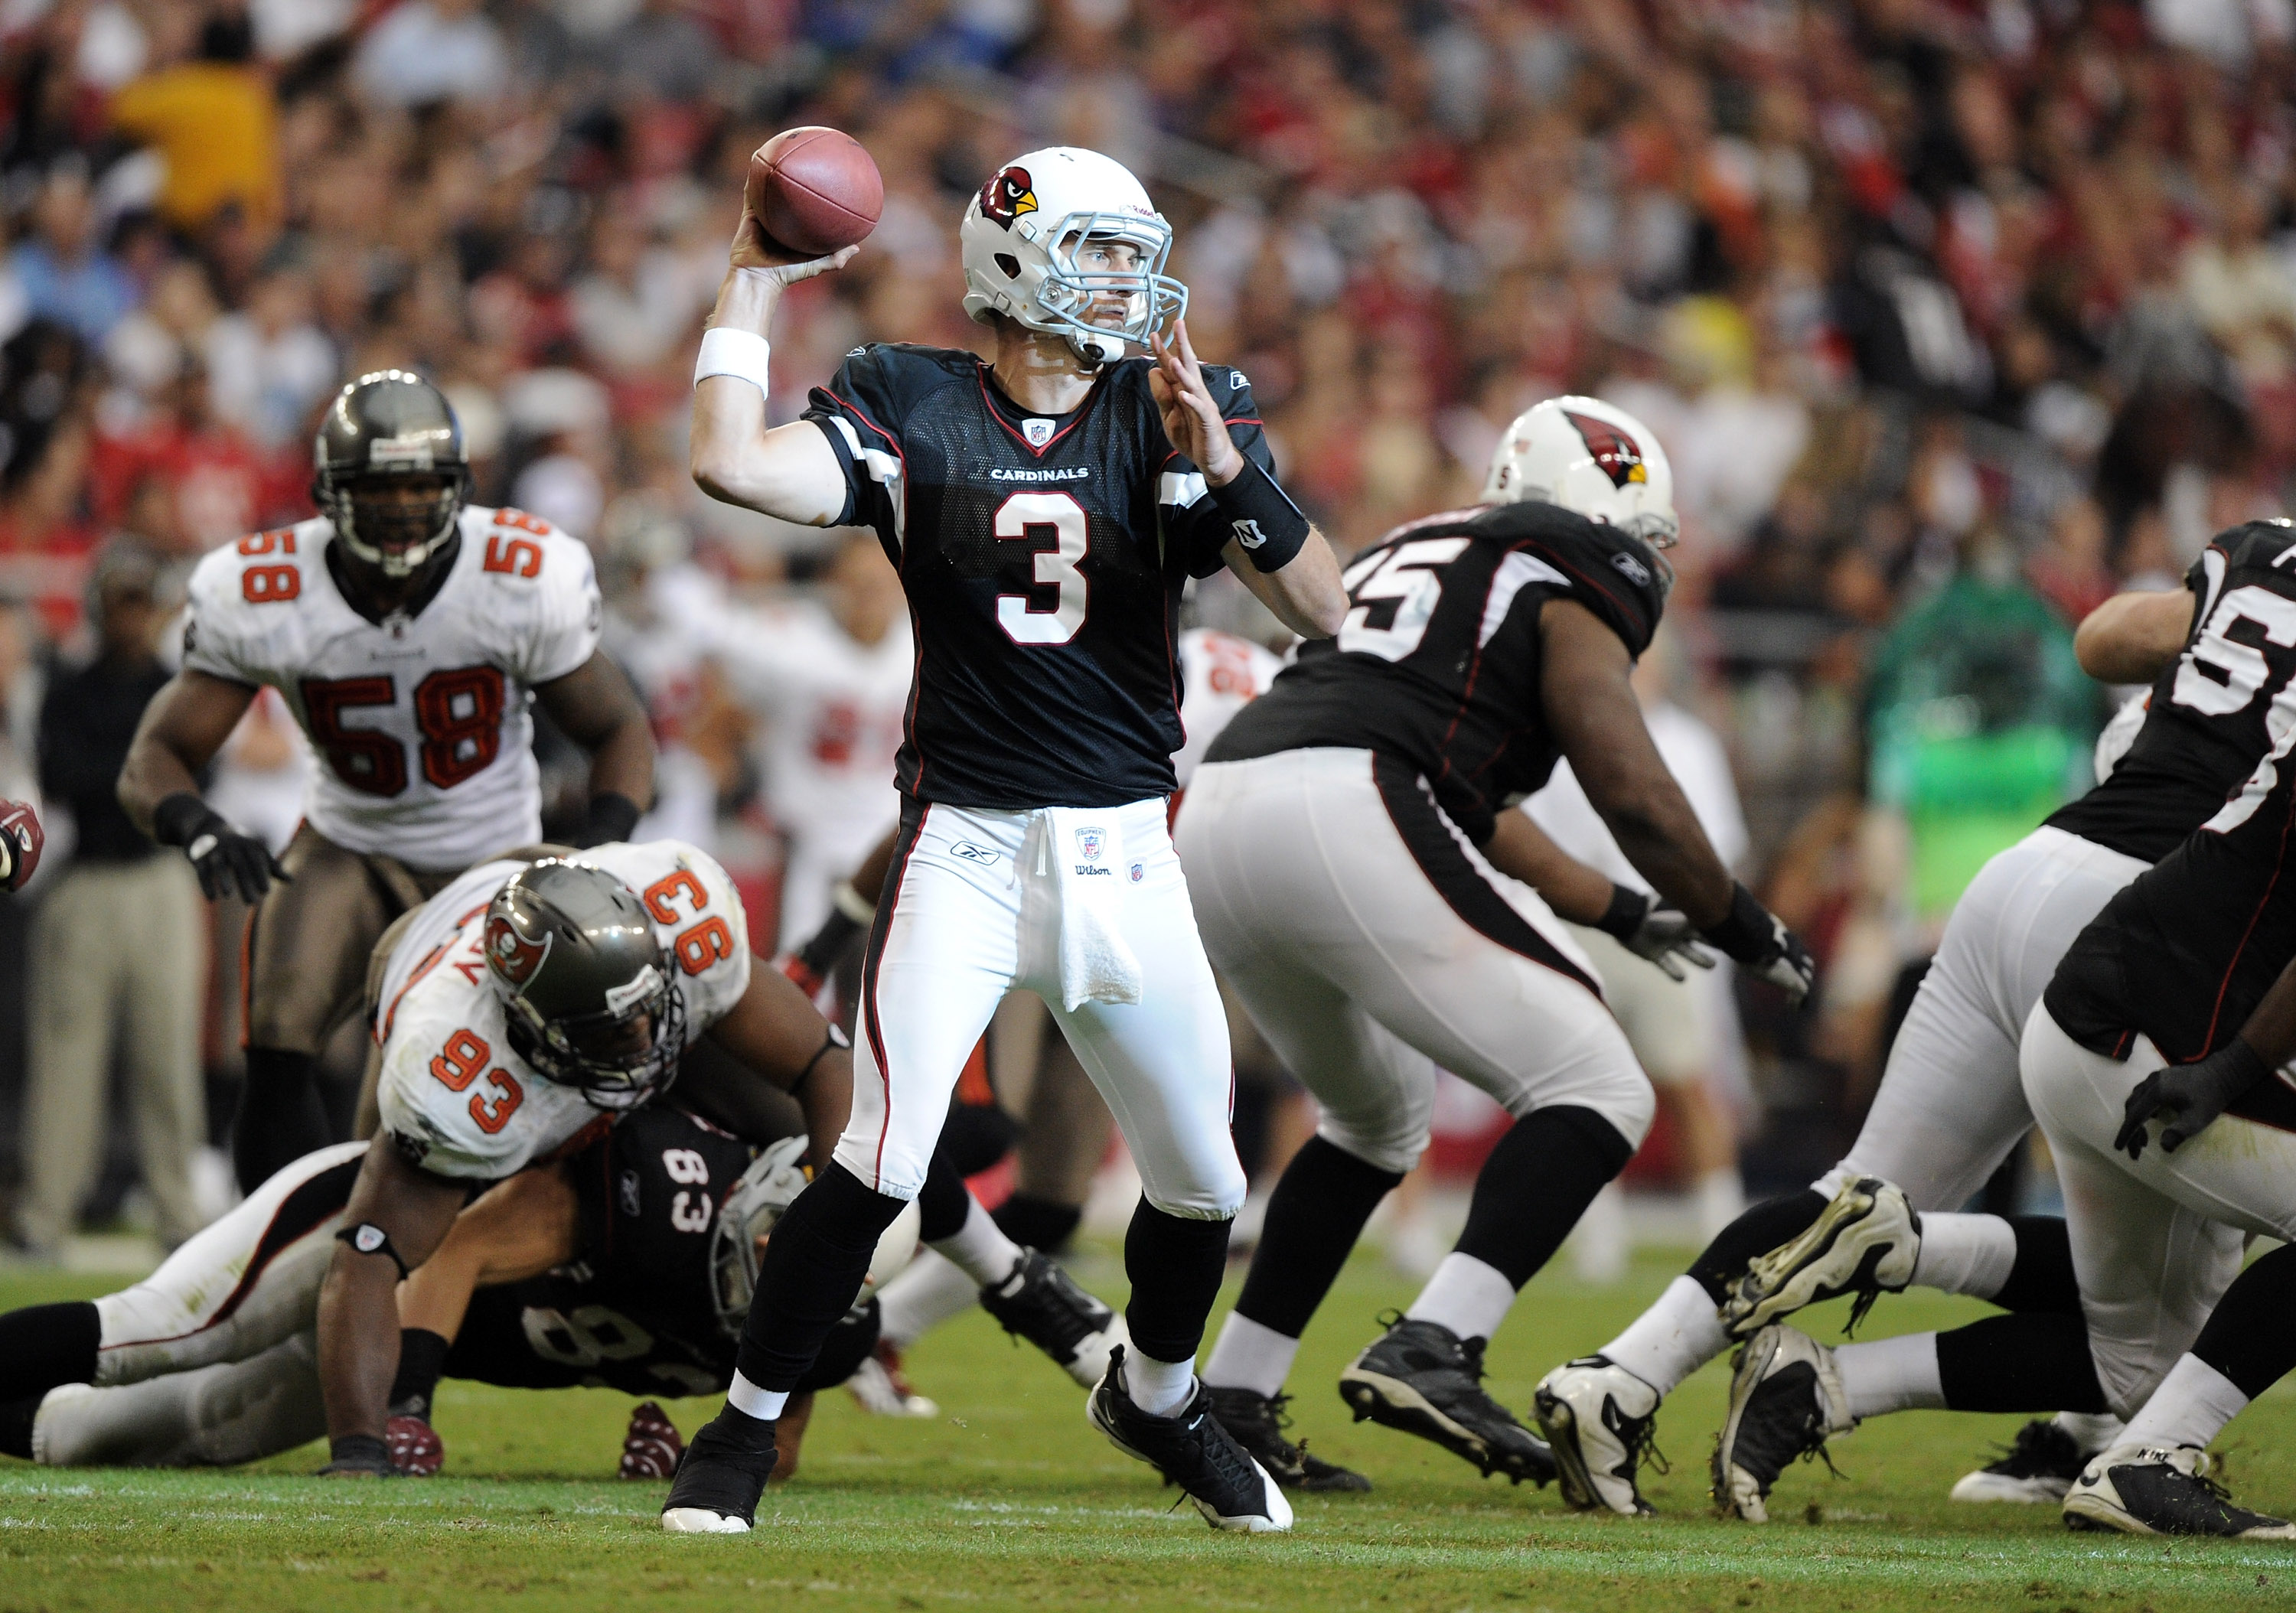 GLENDALE, AZ - OCTOBER 31:  Derek Anderson #3 of the Arizona Cardinals passes in the pocket against the Tampa Bay Buccaneers at University of Phoenix Stadium on October 31, 2010 in Glendale, Arizona.  (Photo by Harry How/Getty Images)